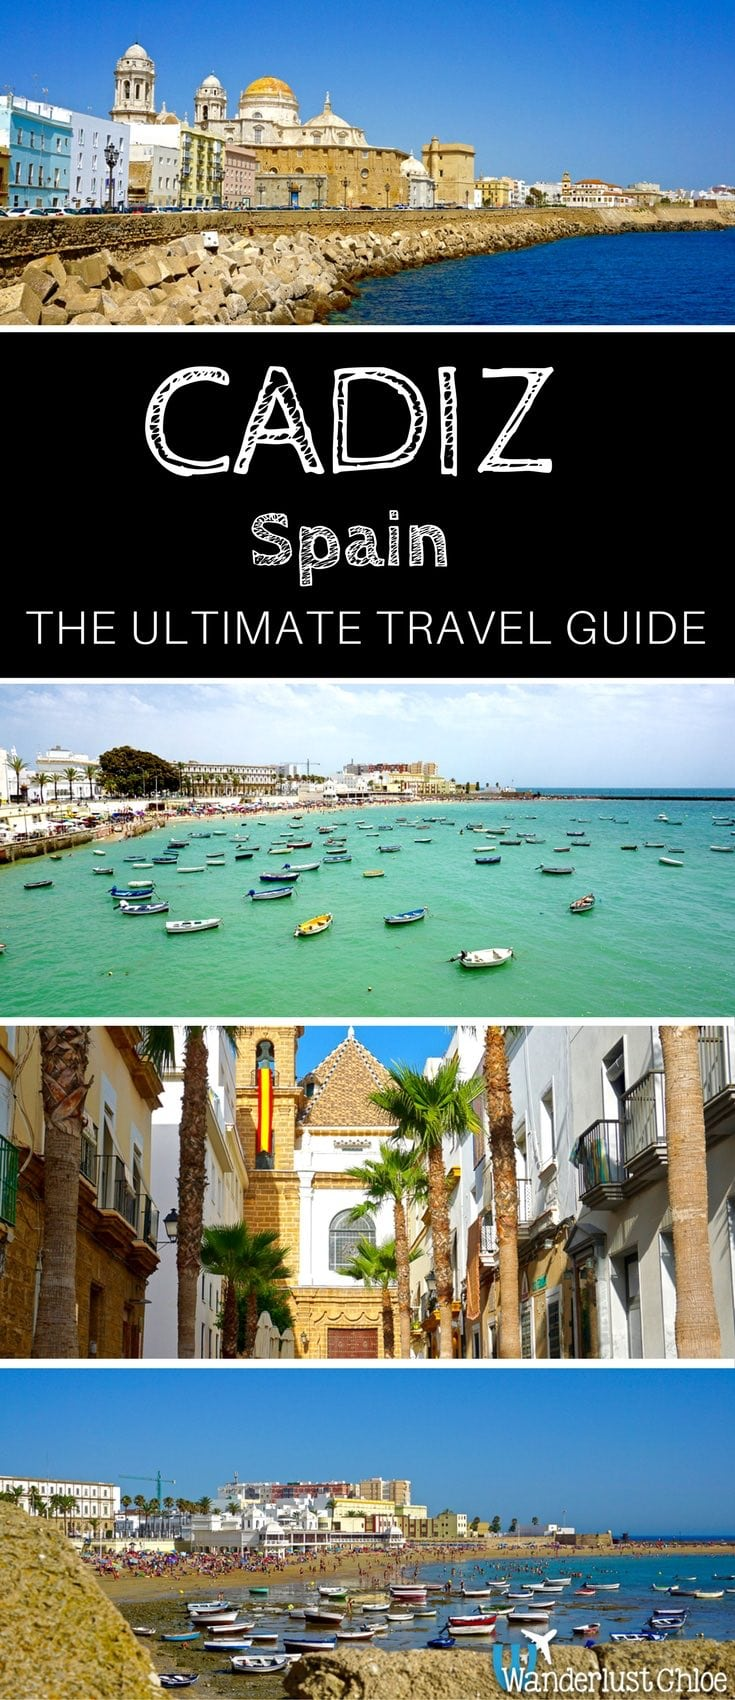 Cadiz, Spain: The Ultimate Travel Guide